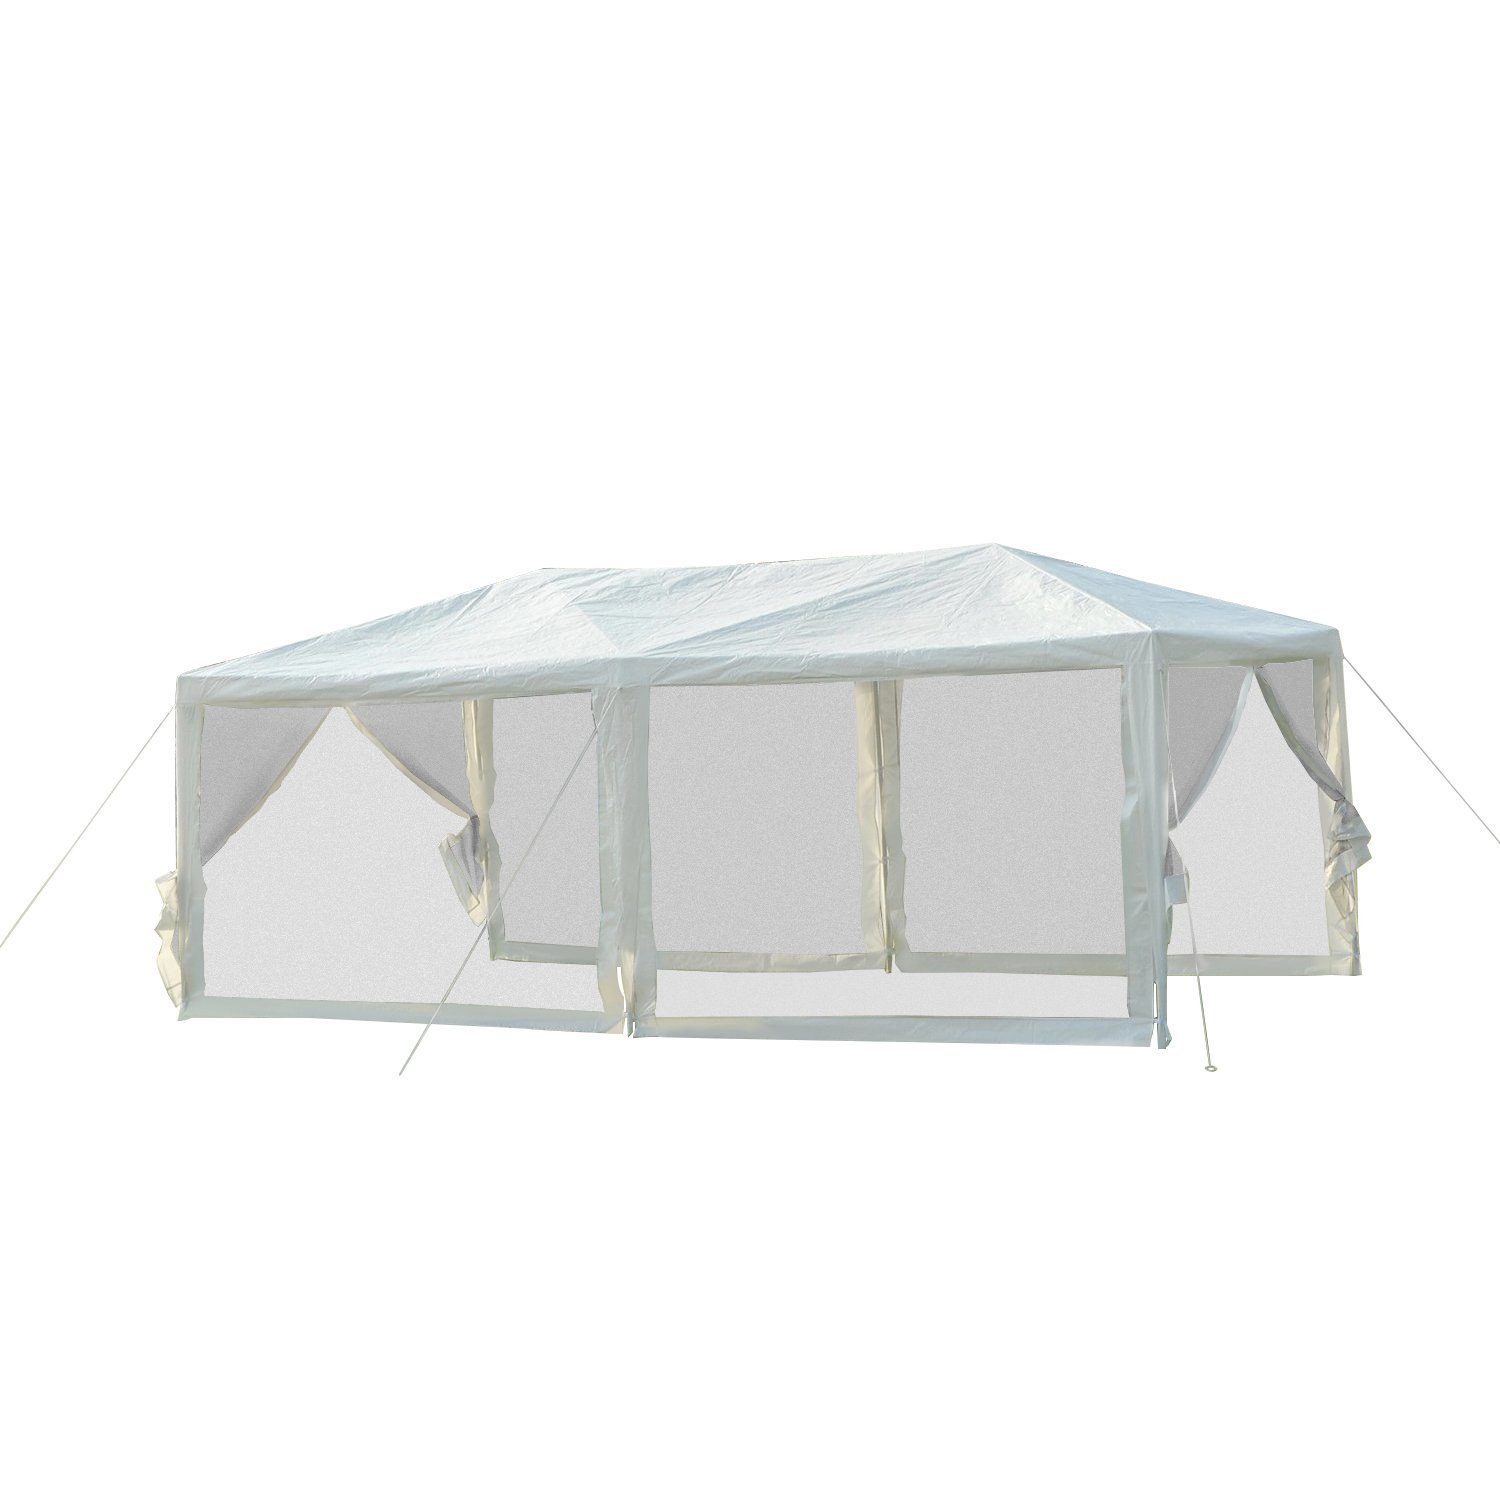 Outsunny 10' x 20' Gazebo Canopy Cover with Removable Mesh Side Walls - White